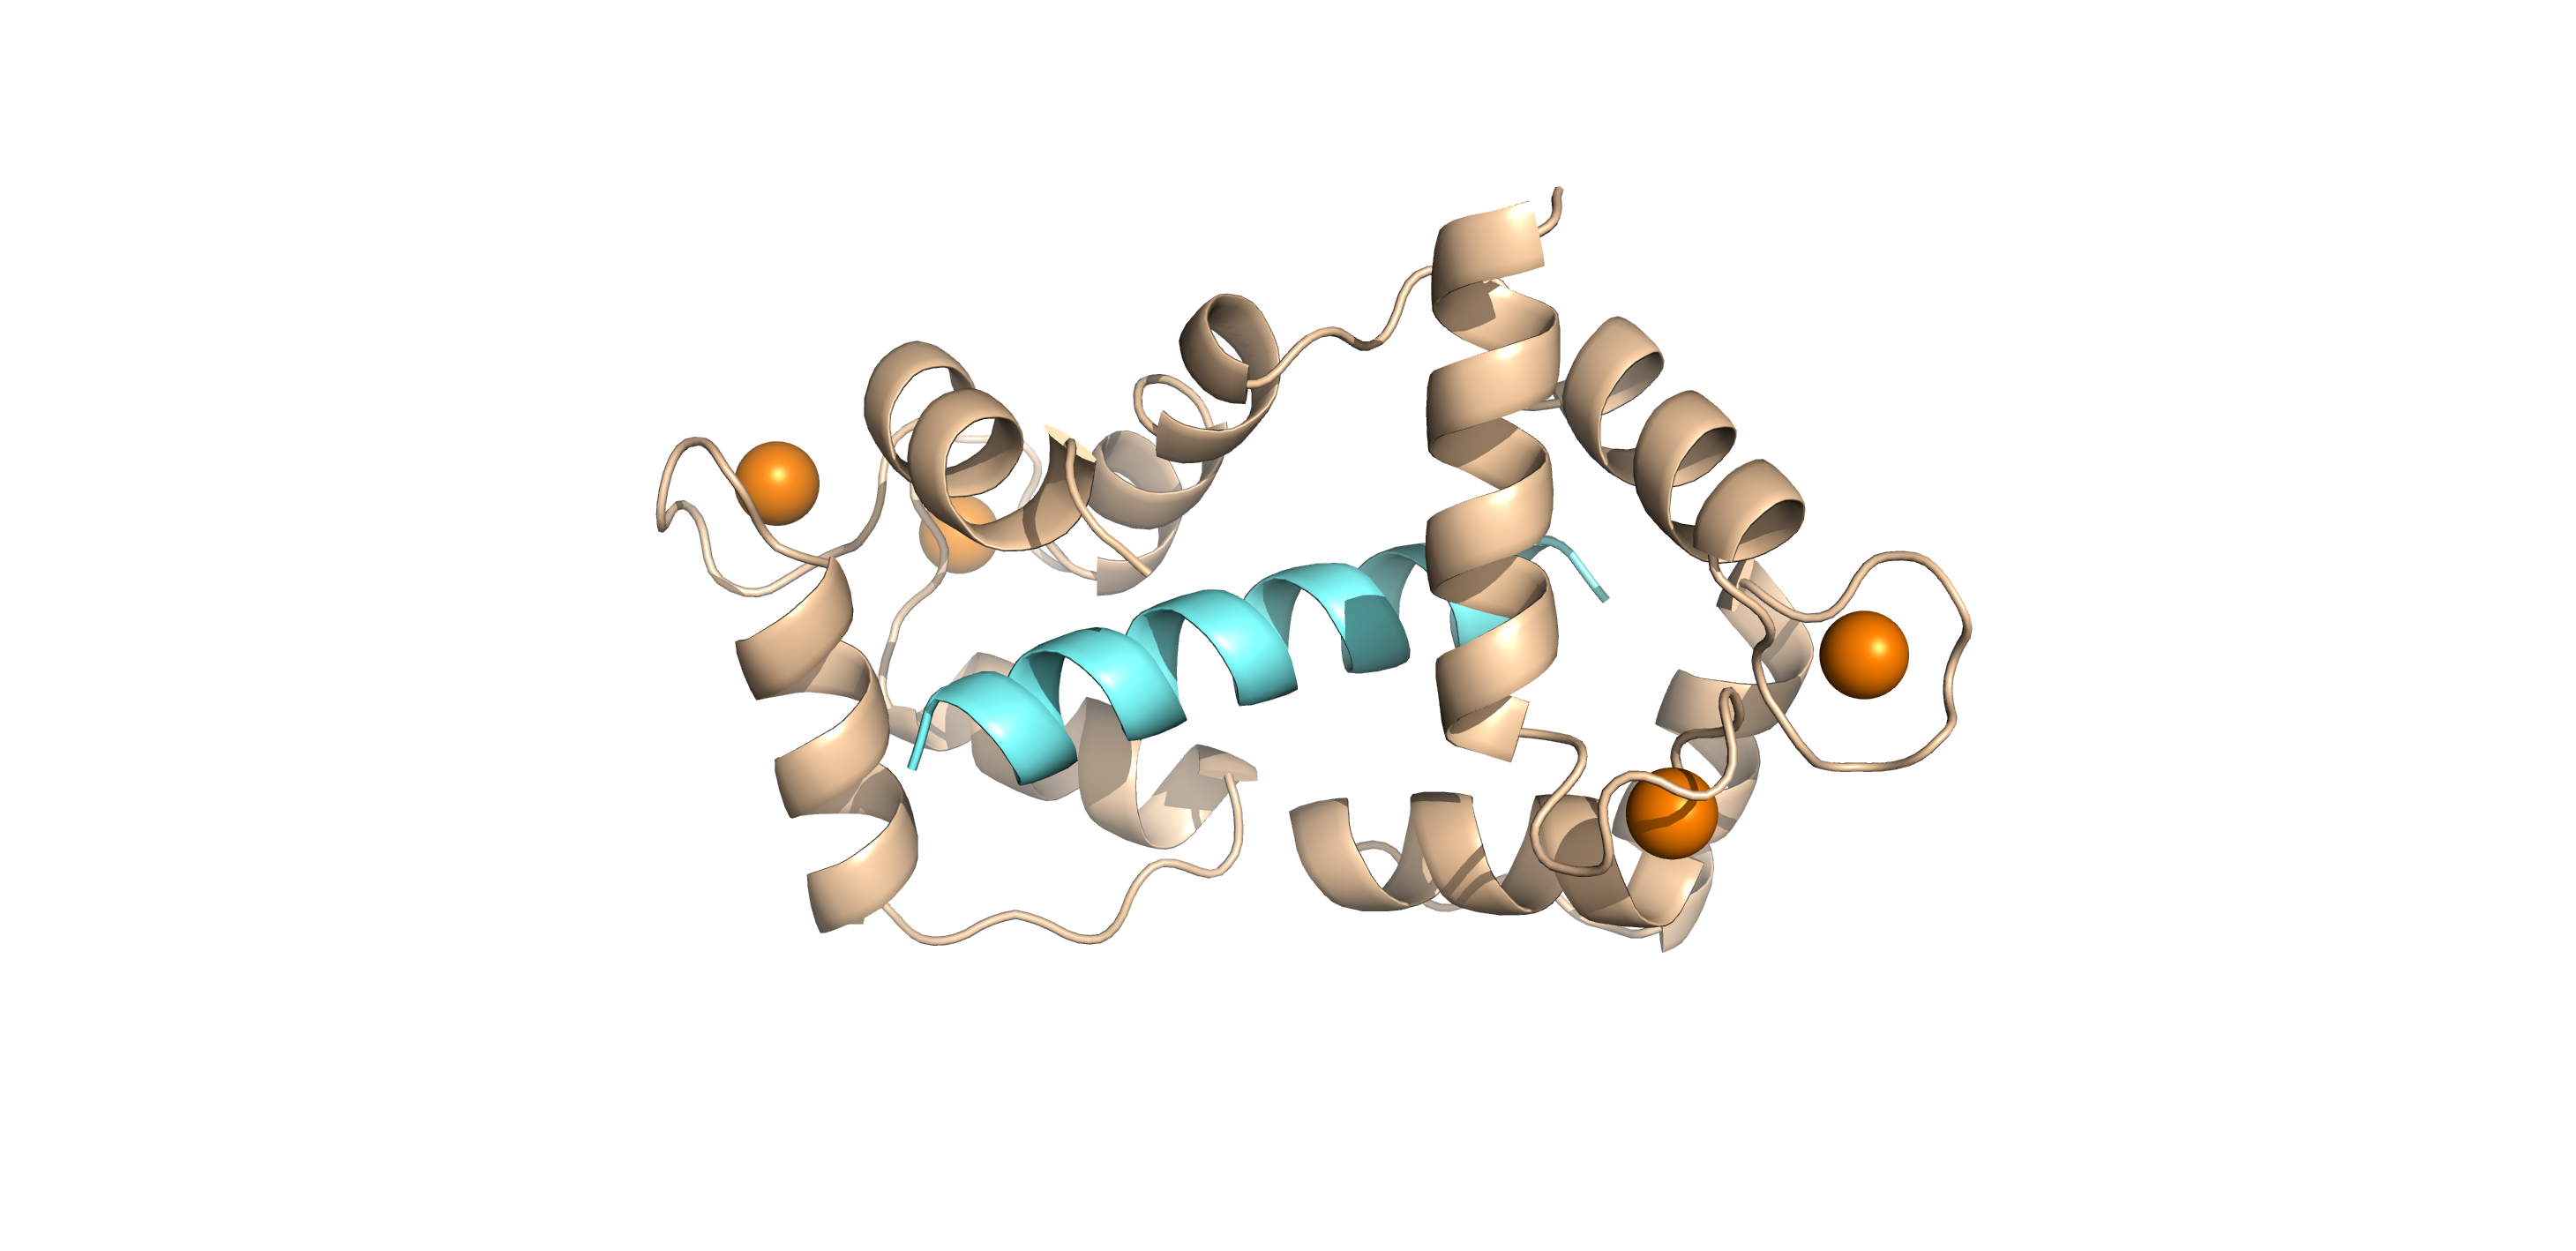 Cartoon representation of the crystal structure of calmodulin in complex with RyR2 peptide.